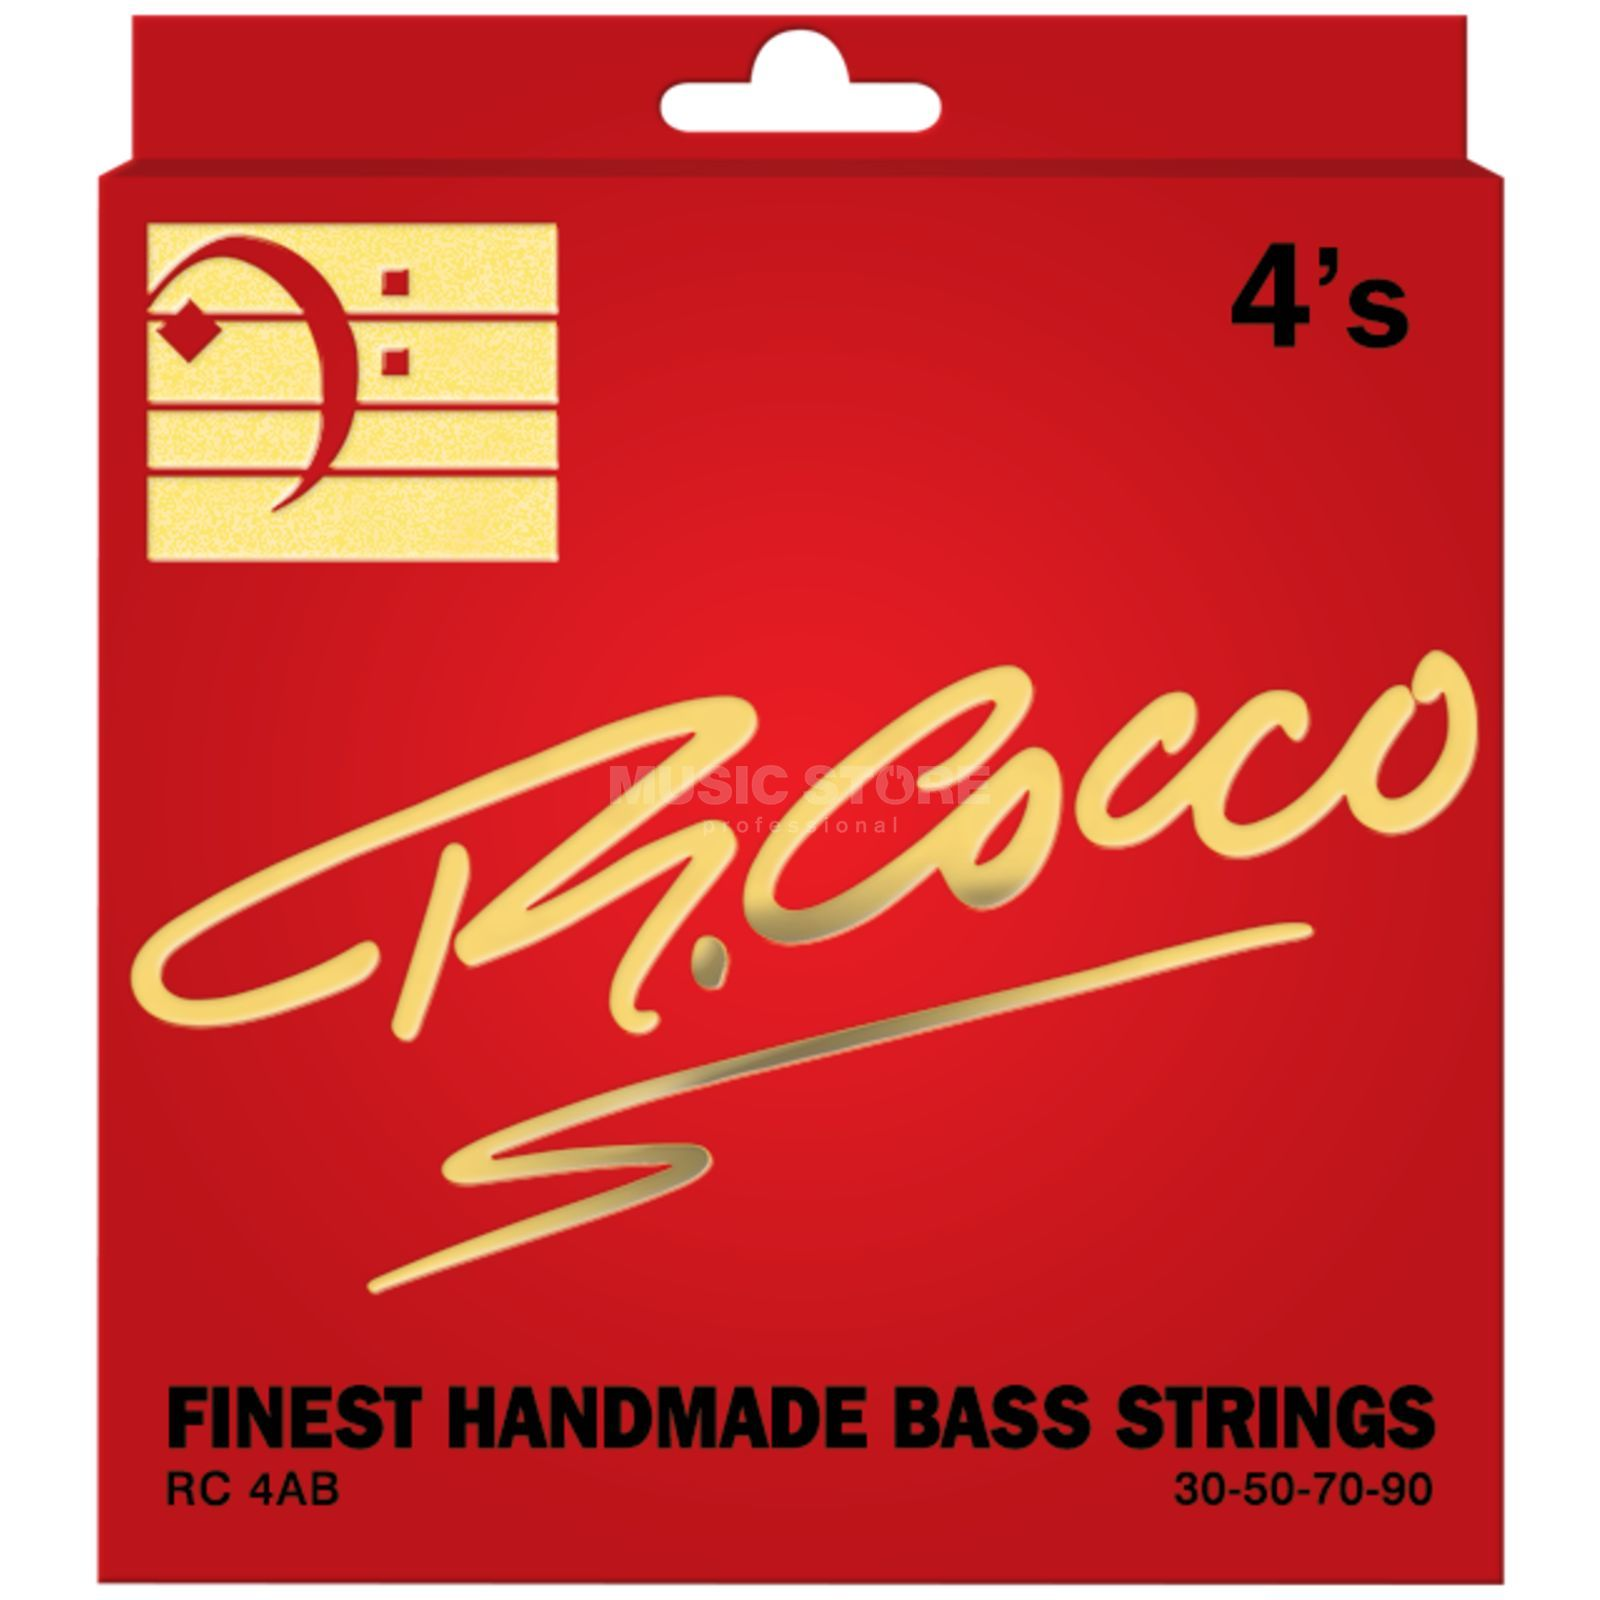 Cocco RC4AB Bass Strings 30-90 4 Set, 30-50-70-90 Classic Wound Zdjęcie produktu